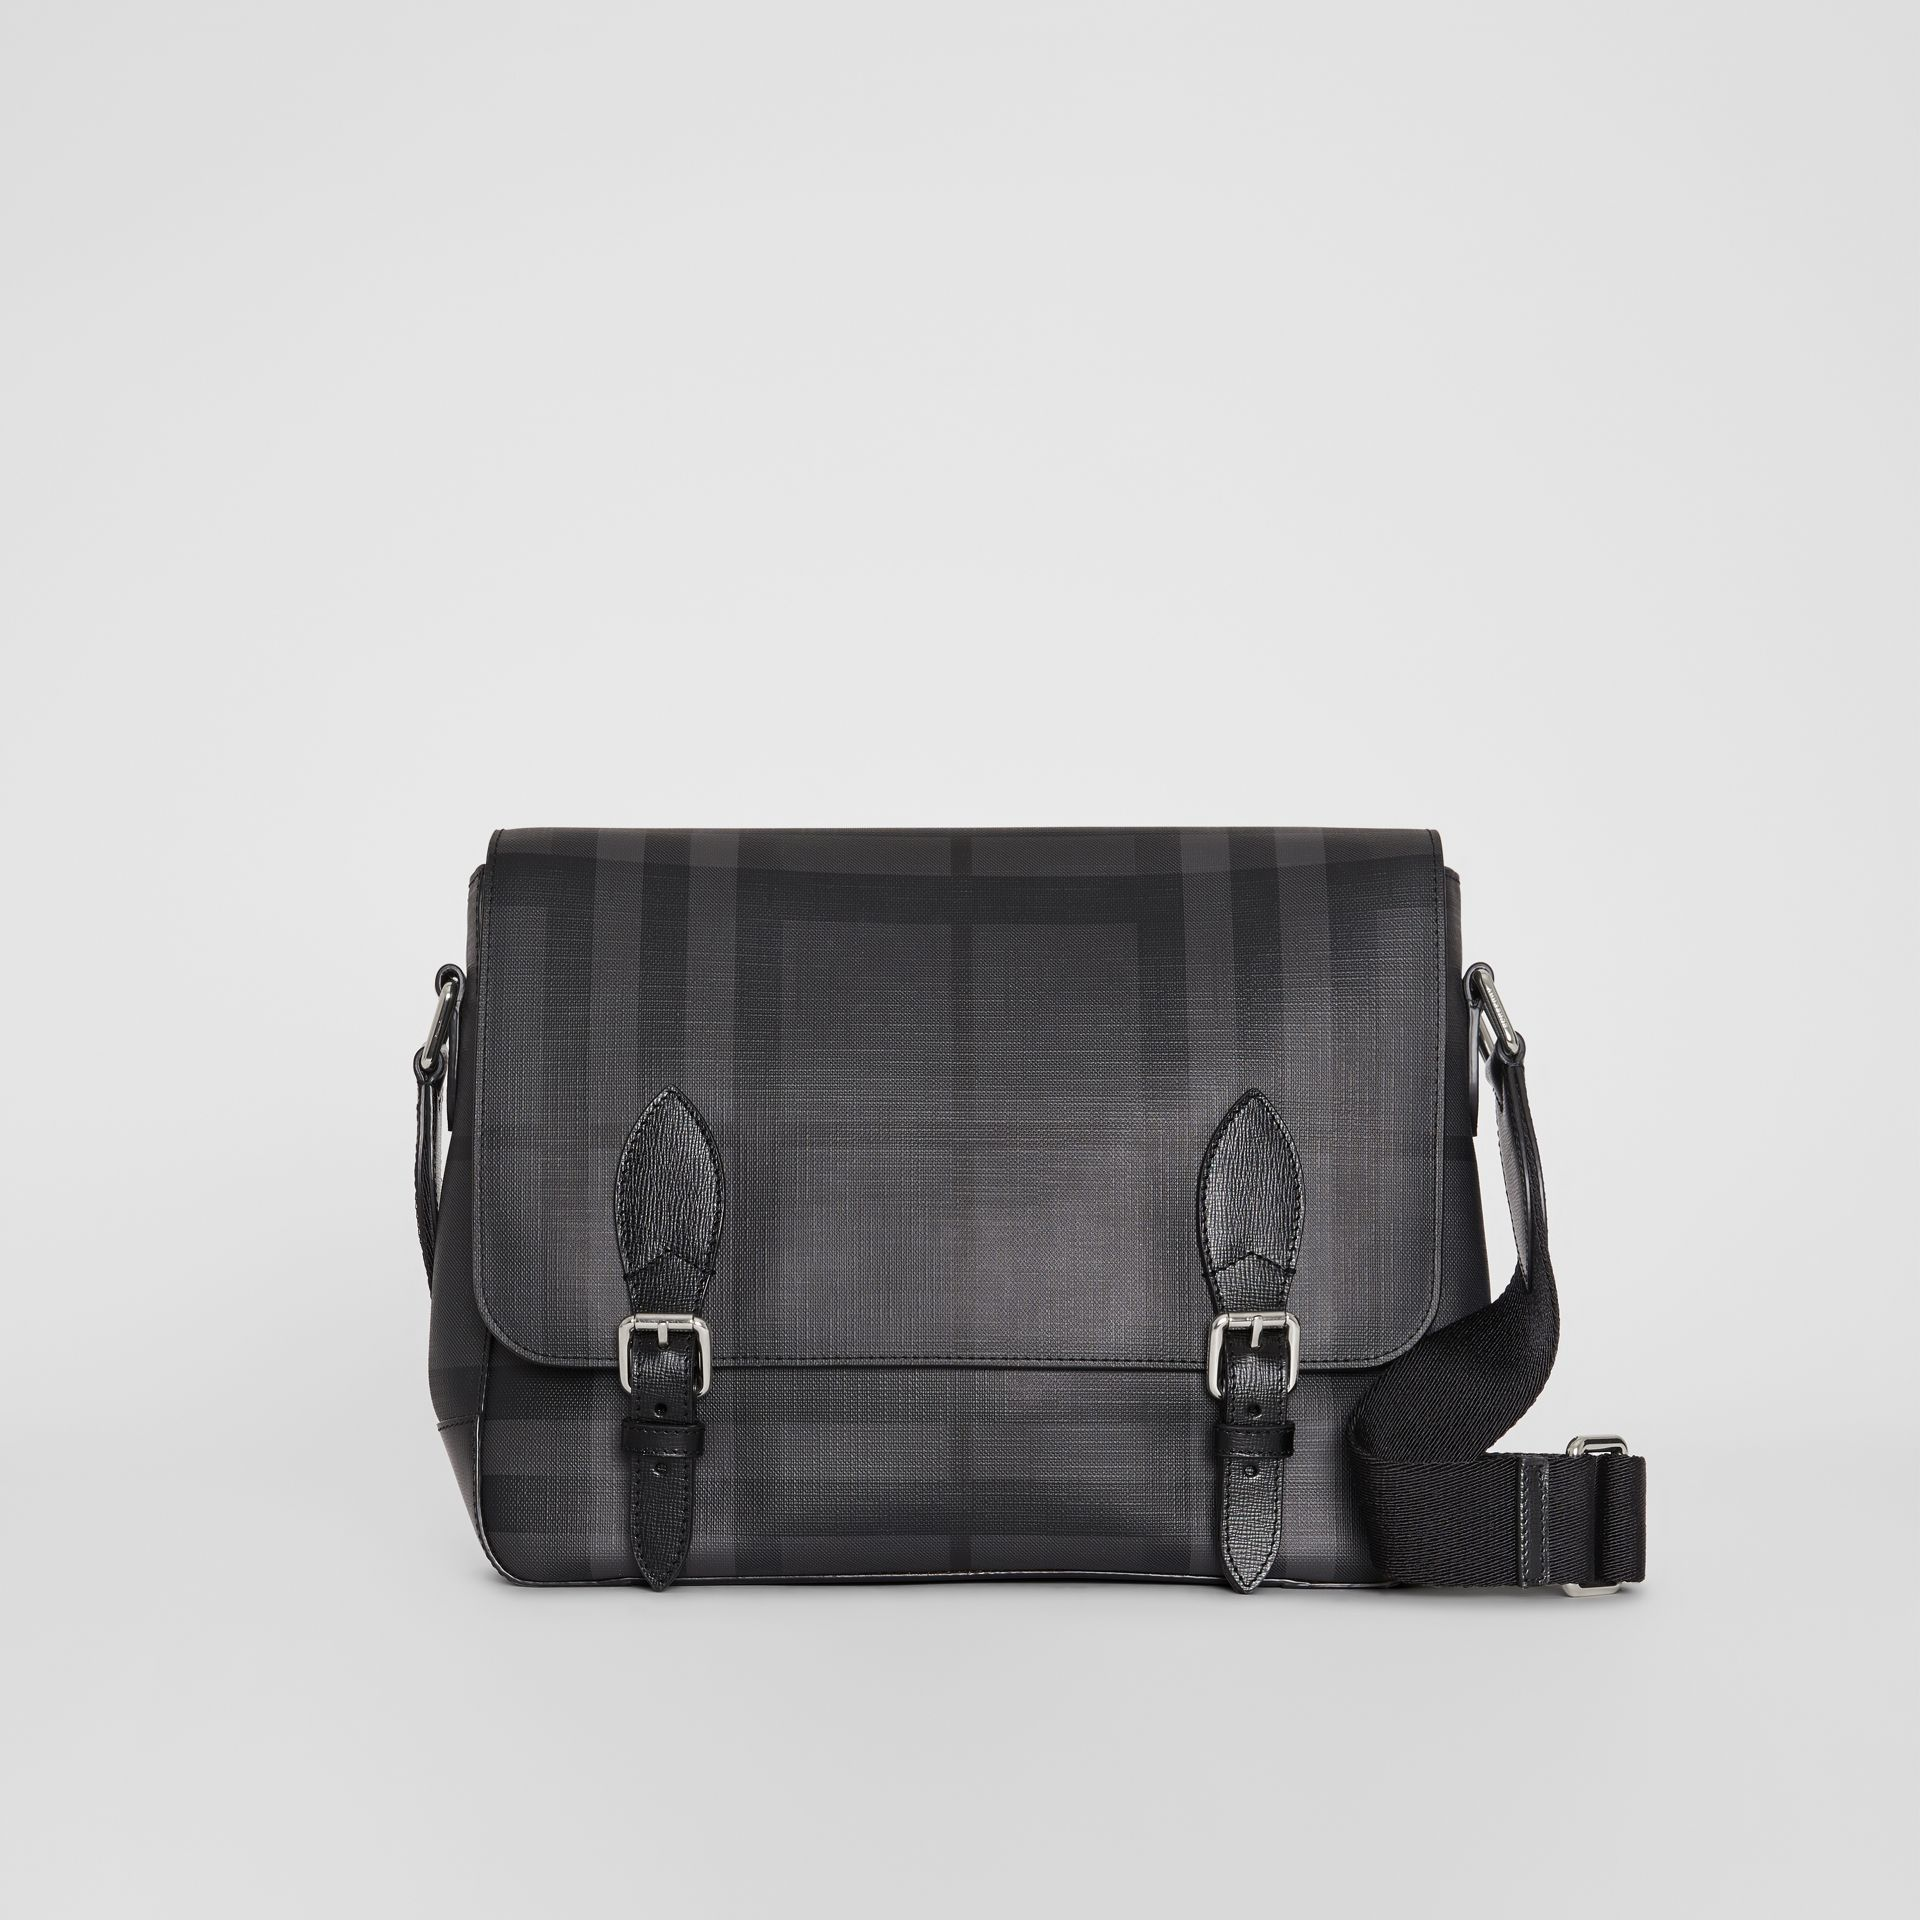 Medium Leather Trim London Check Messenger Bag in Charcoal/black - Men | Burberry - gallery image 4